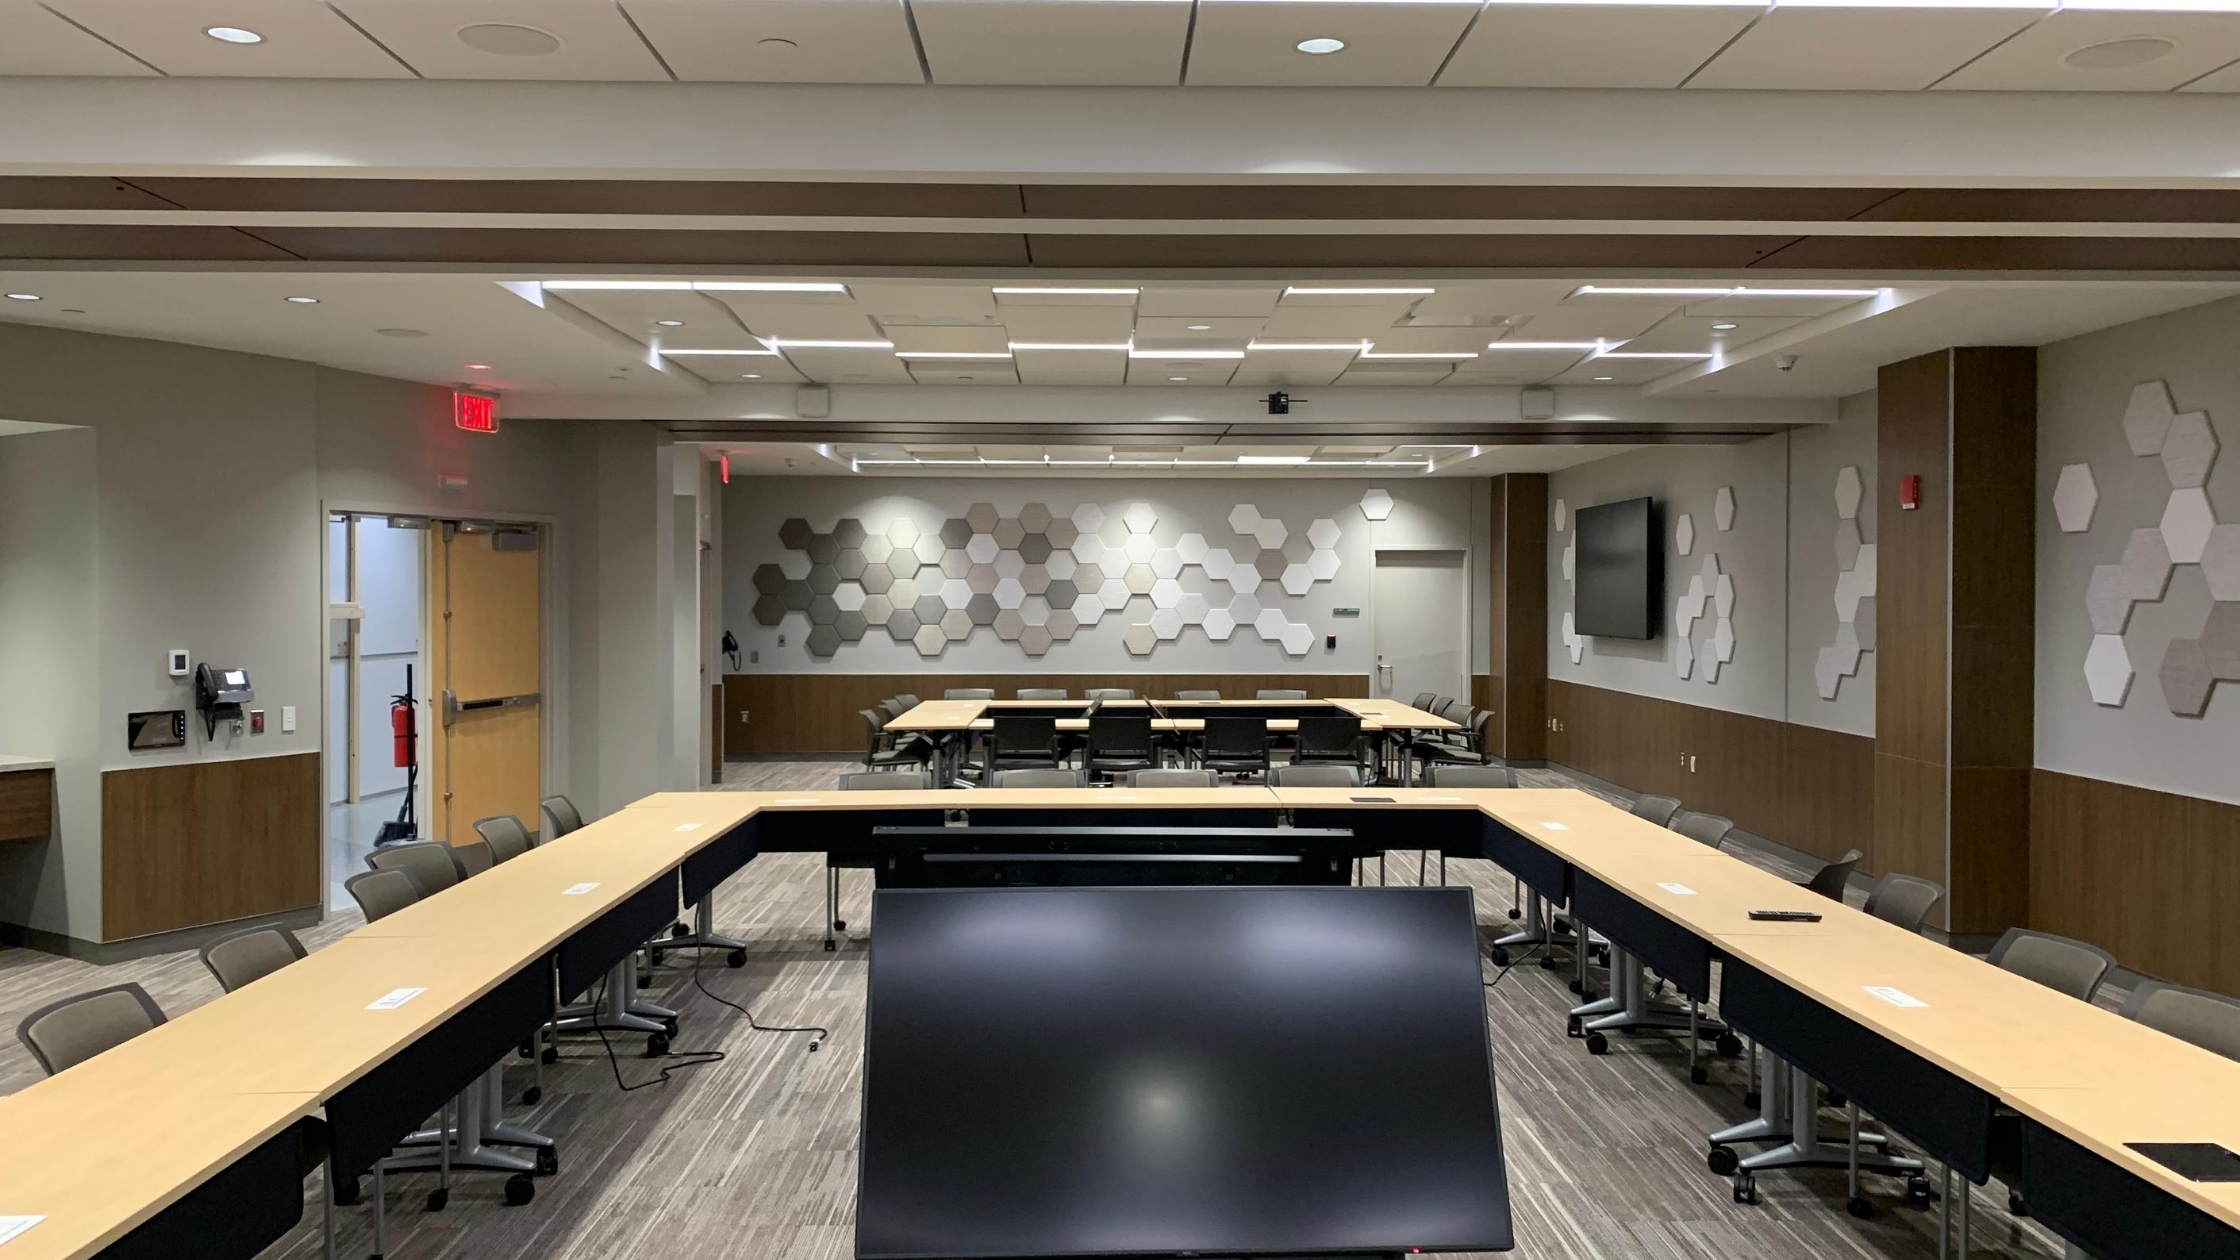 Office meeting room with two Skyfold operable partitions recessed in the ceiling and with hexagonal acoustic tiles on the wall.